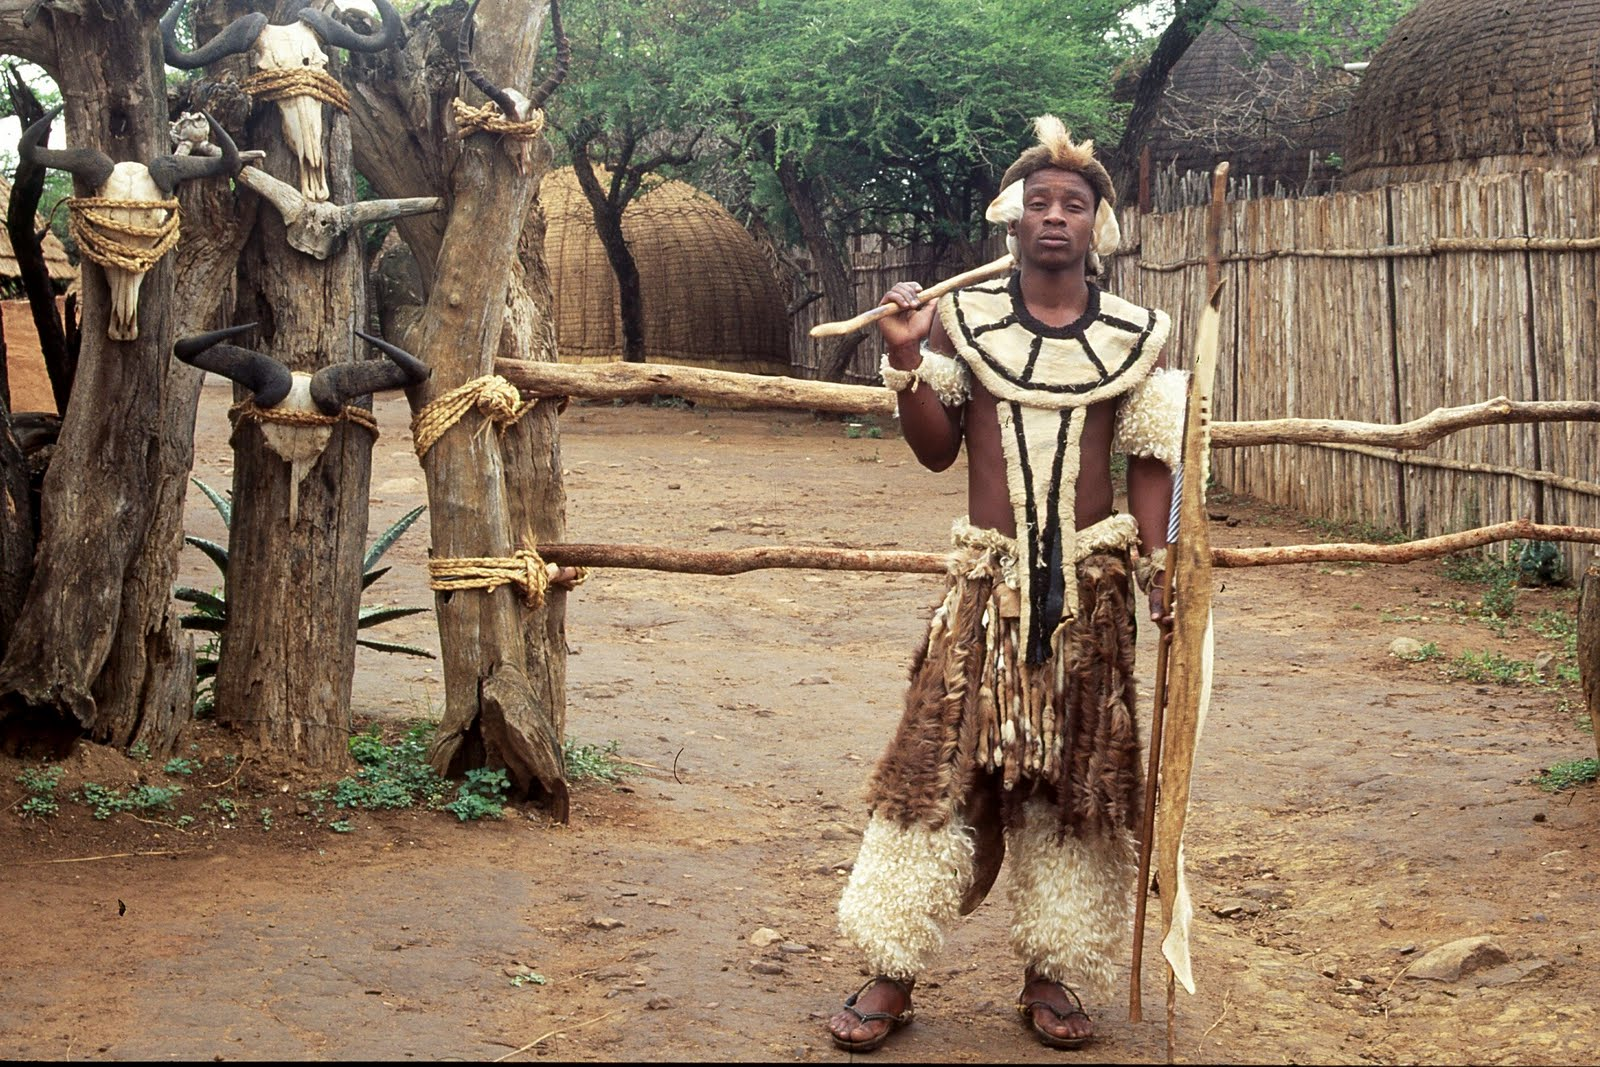 Zulu Shakaland Zulu in traditional dress, Shakaland